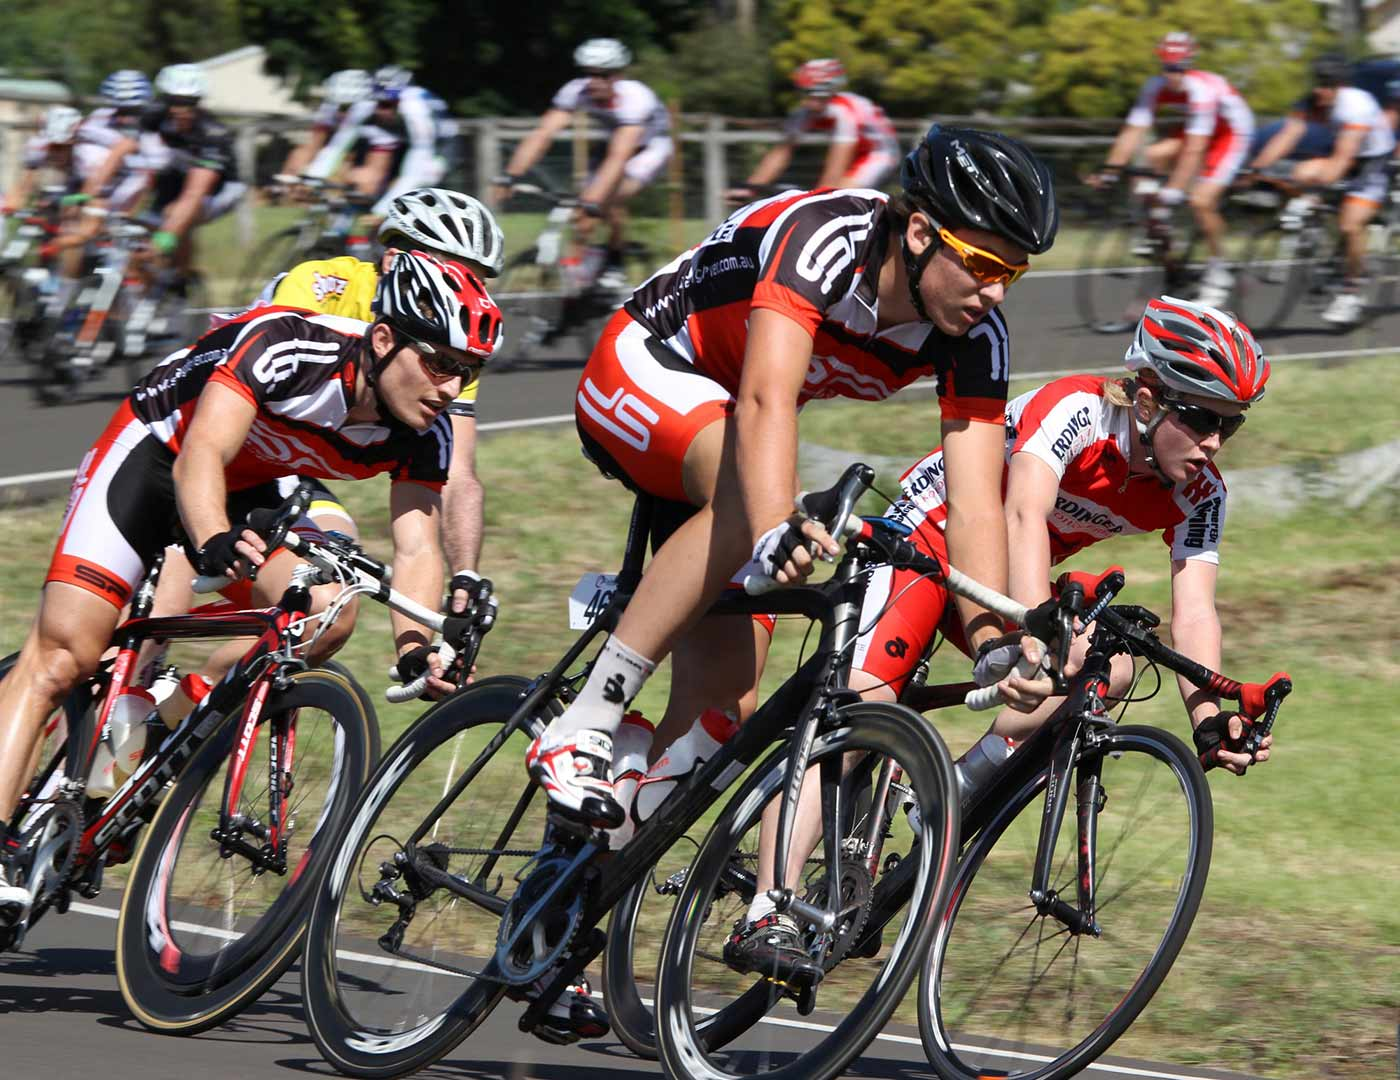 A group of cyclists racing at the Toowoomba Criterium Circuit. - click to view larger image